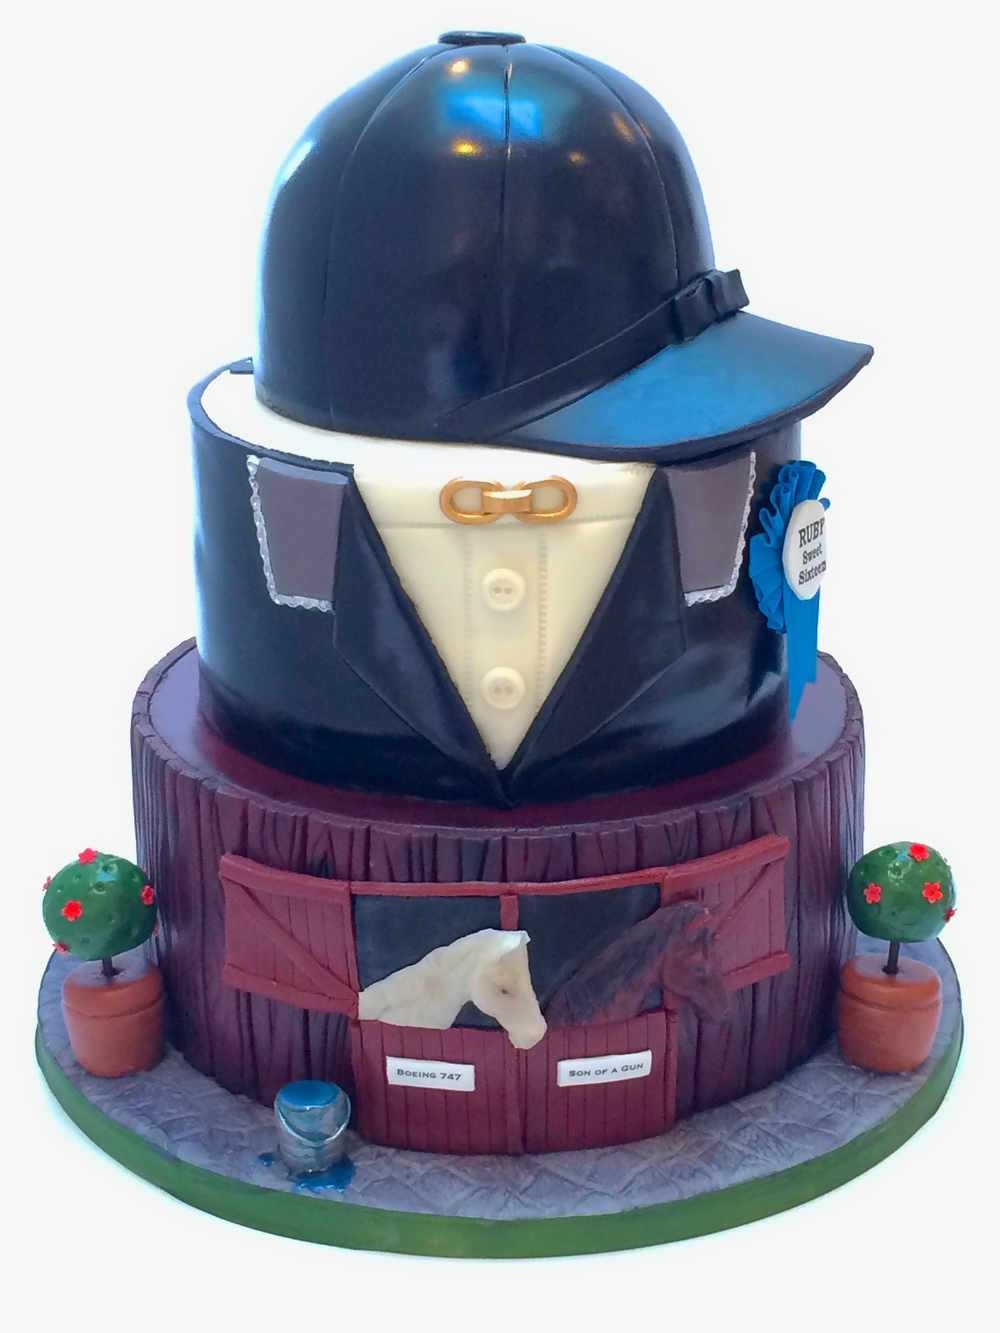 Equestrian Riding Cake, depicting a riding hat, on top of a riding jacket, on top of a barn with horses